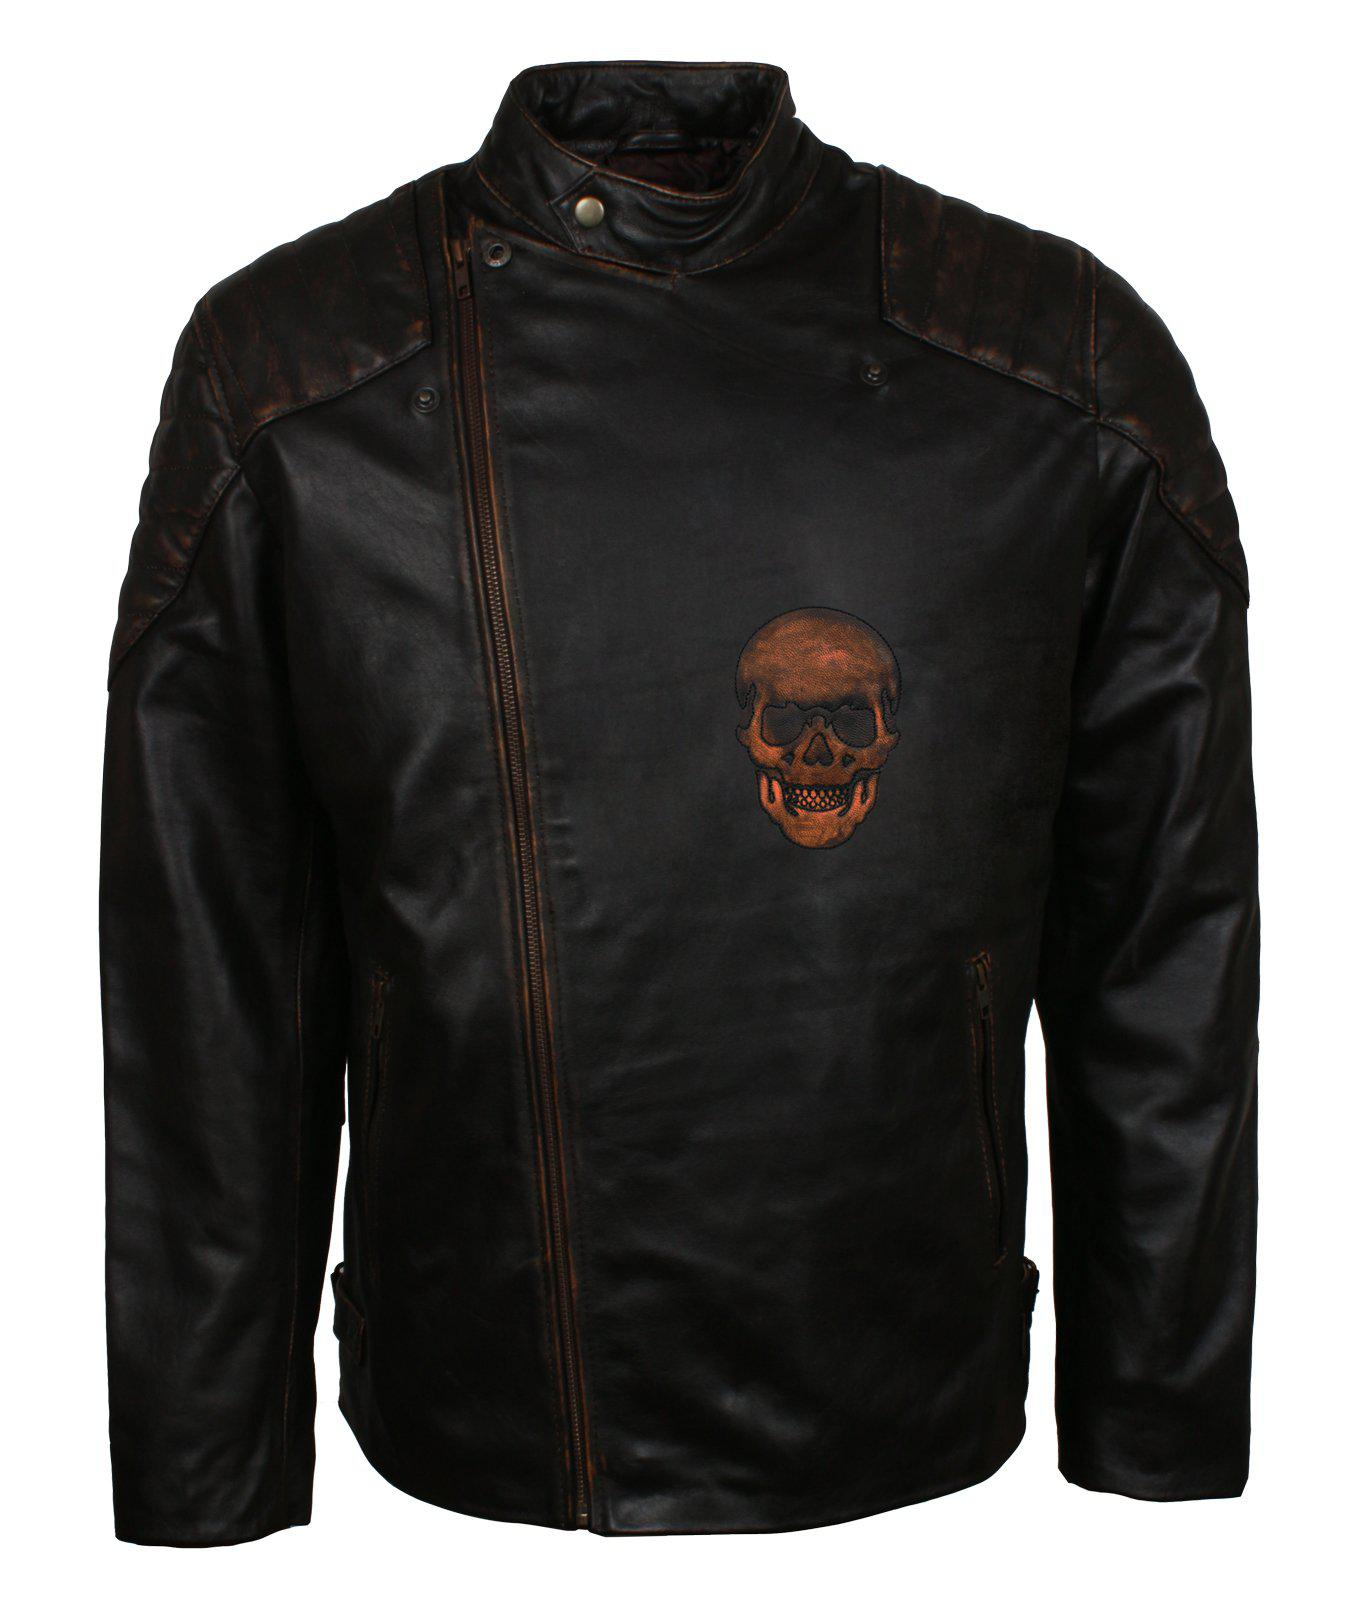 Skull Leather Jacket for Bikers in Black